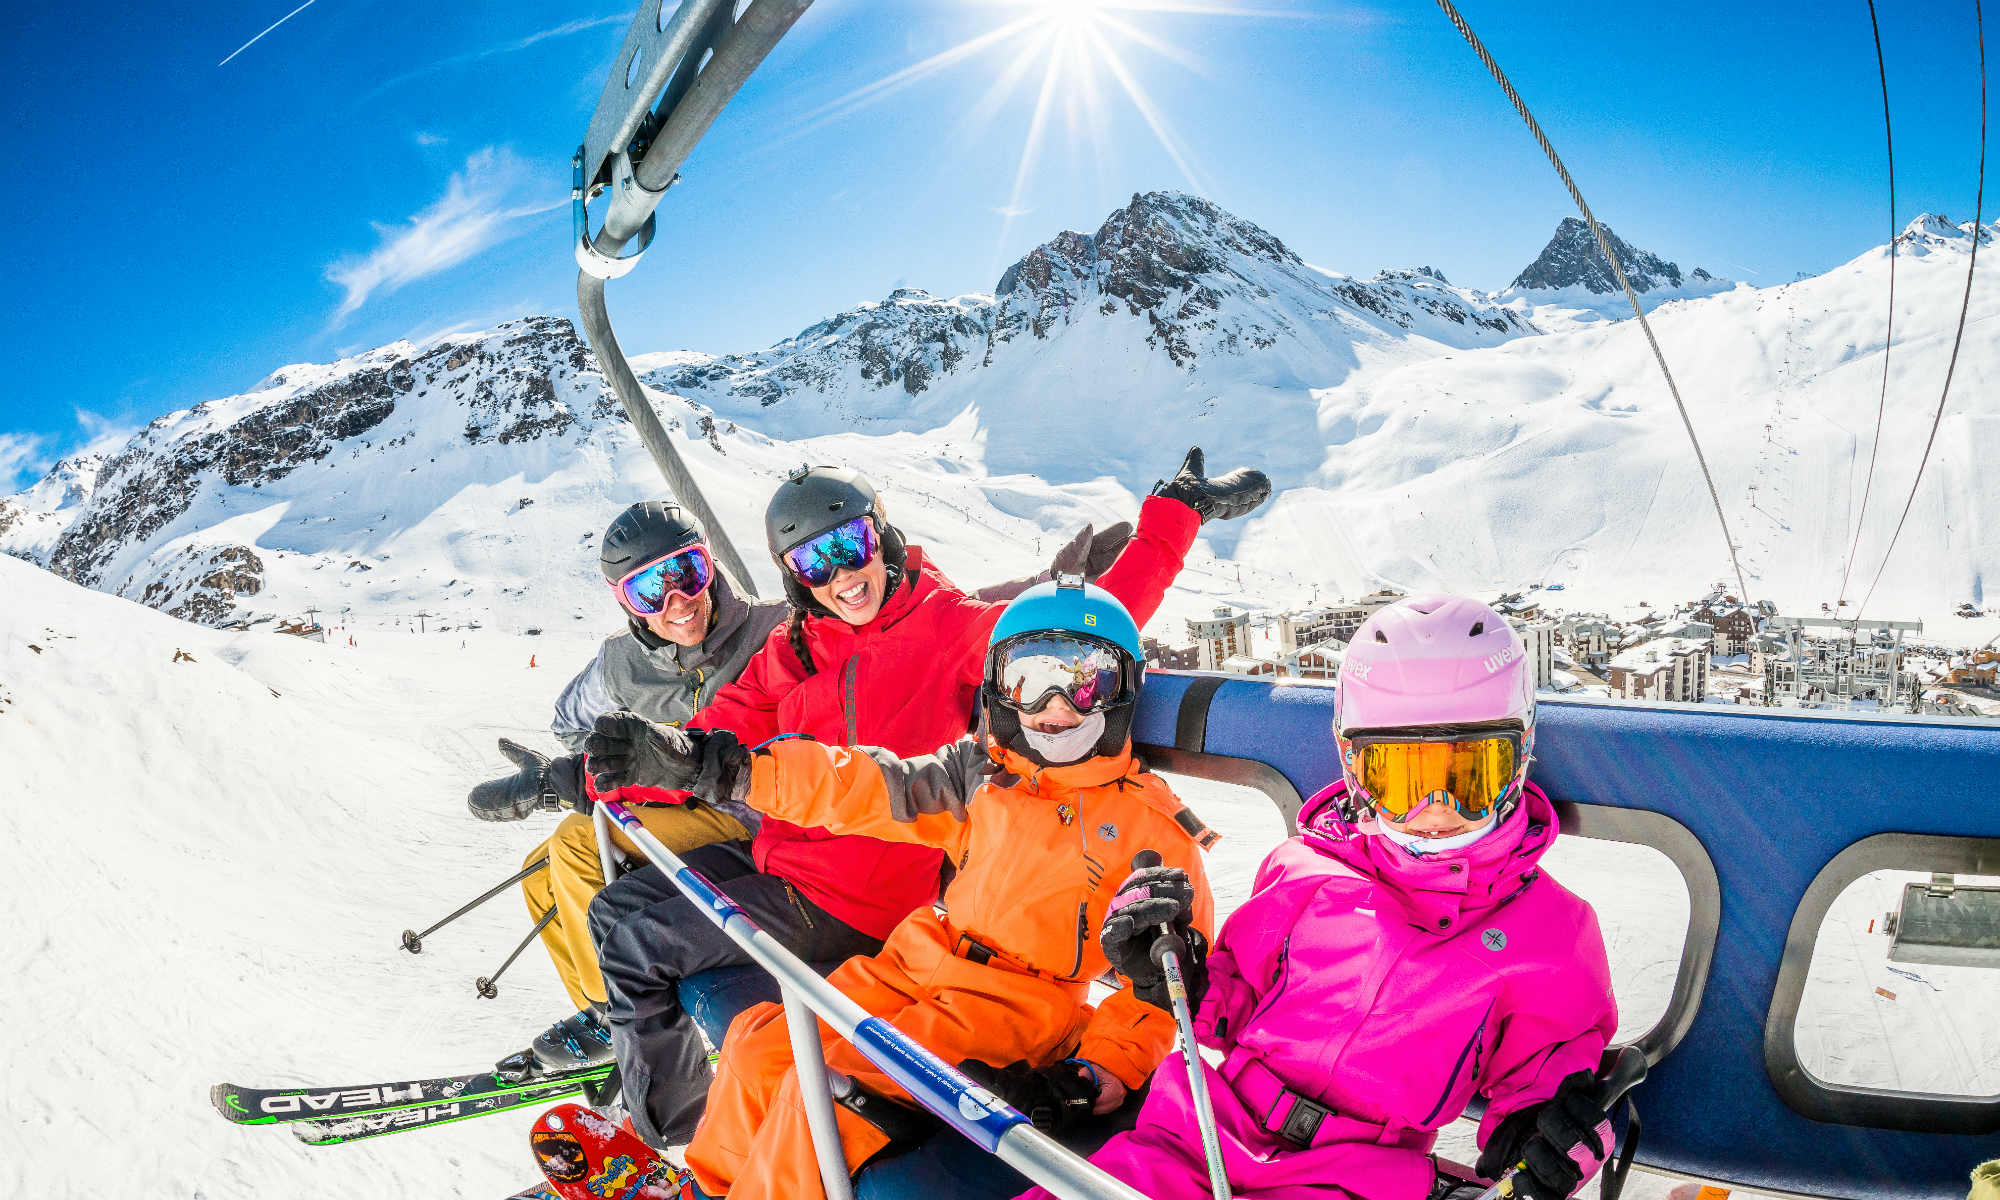 A happy family on the chairlift in the ski resort Tignes.